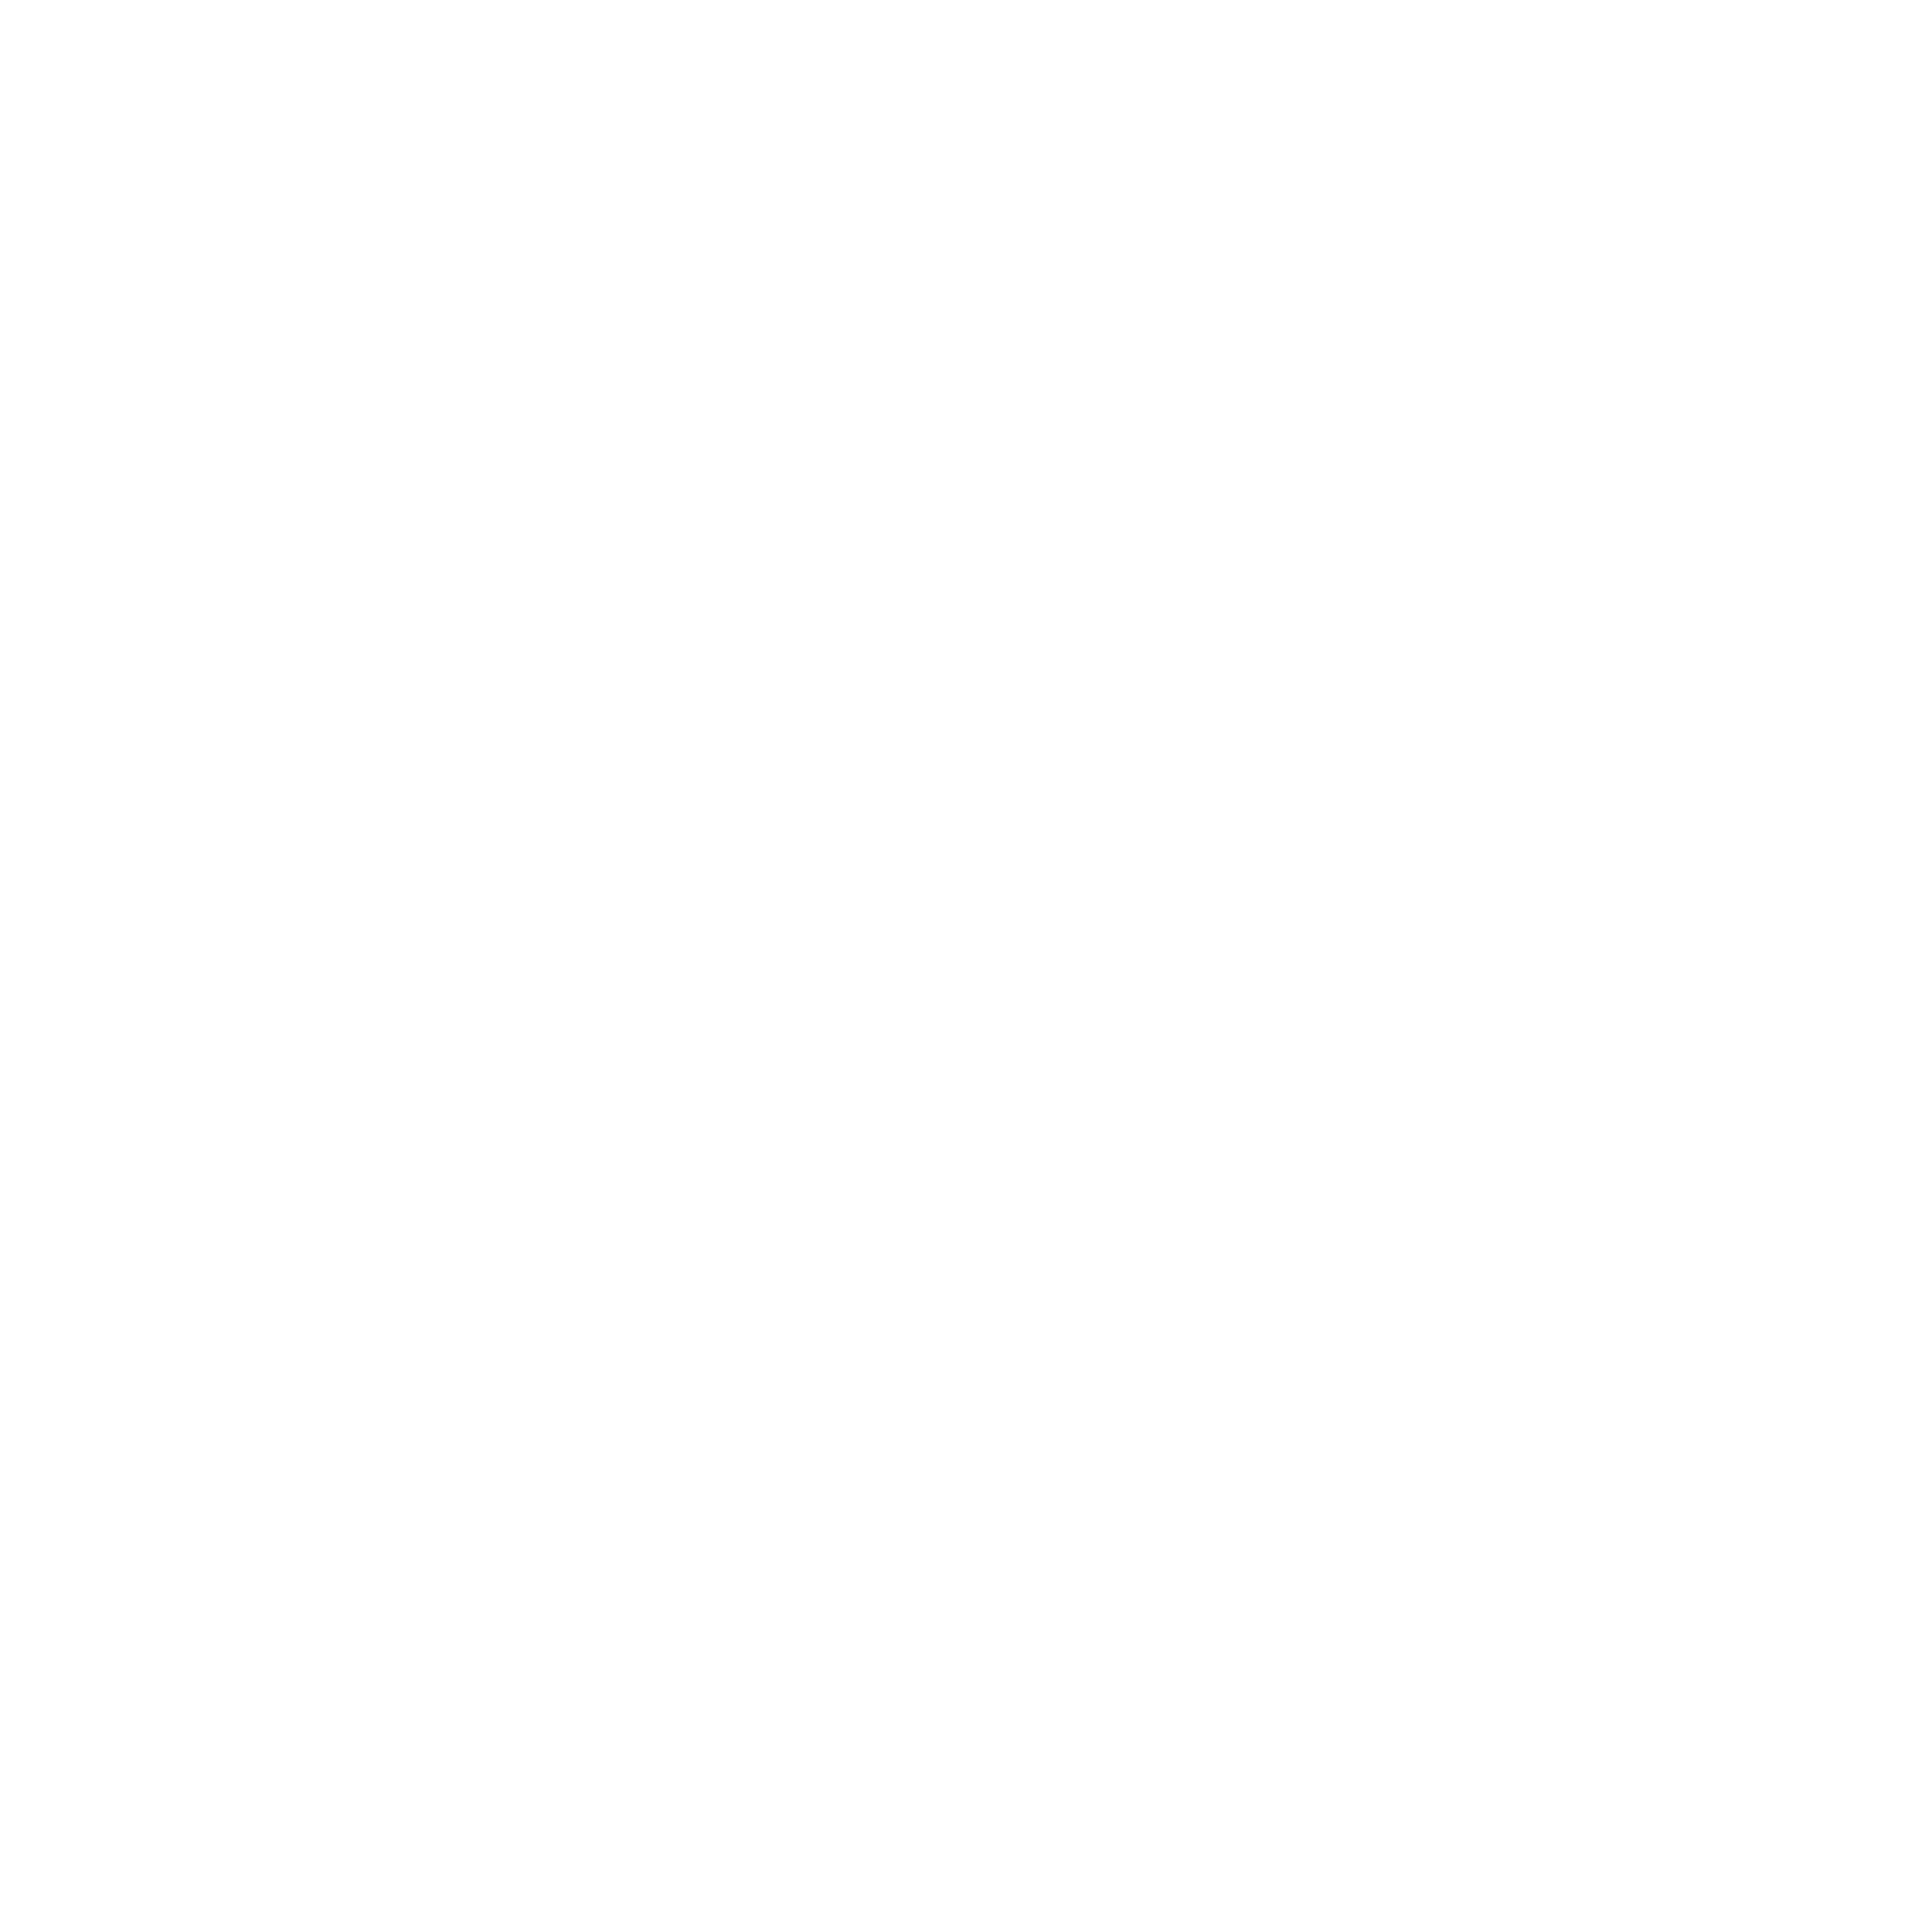 Electric Soul Limited